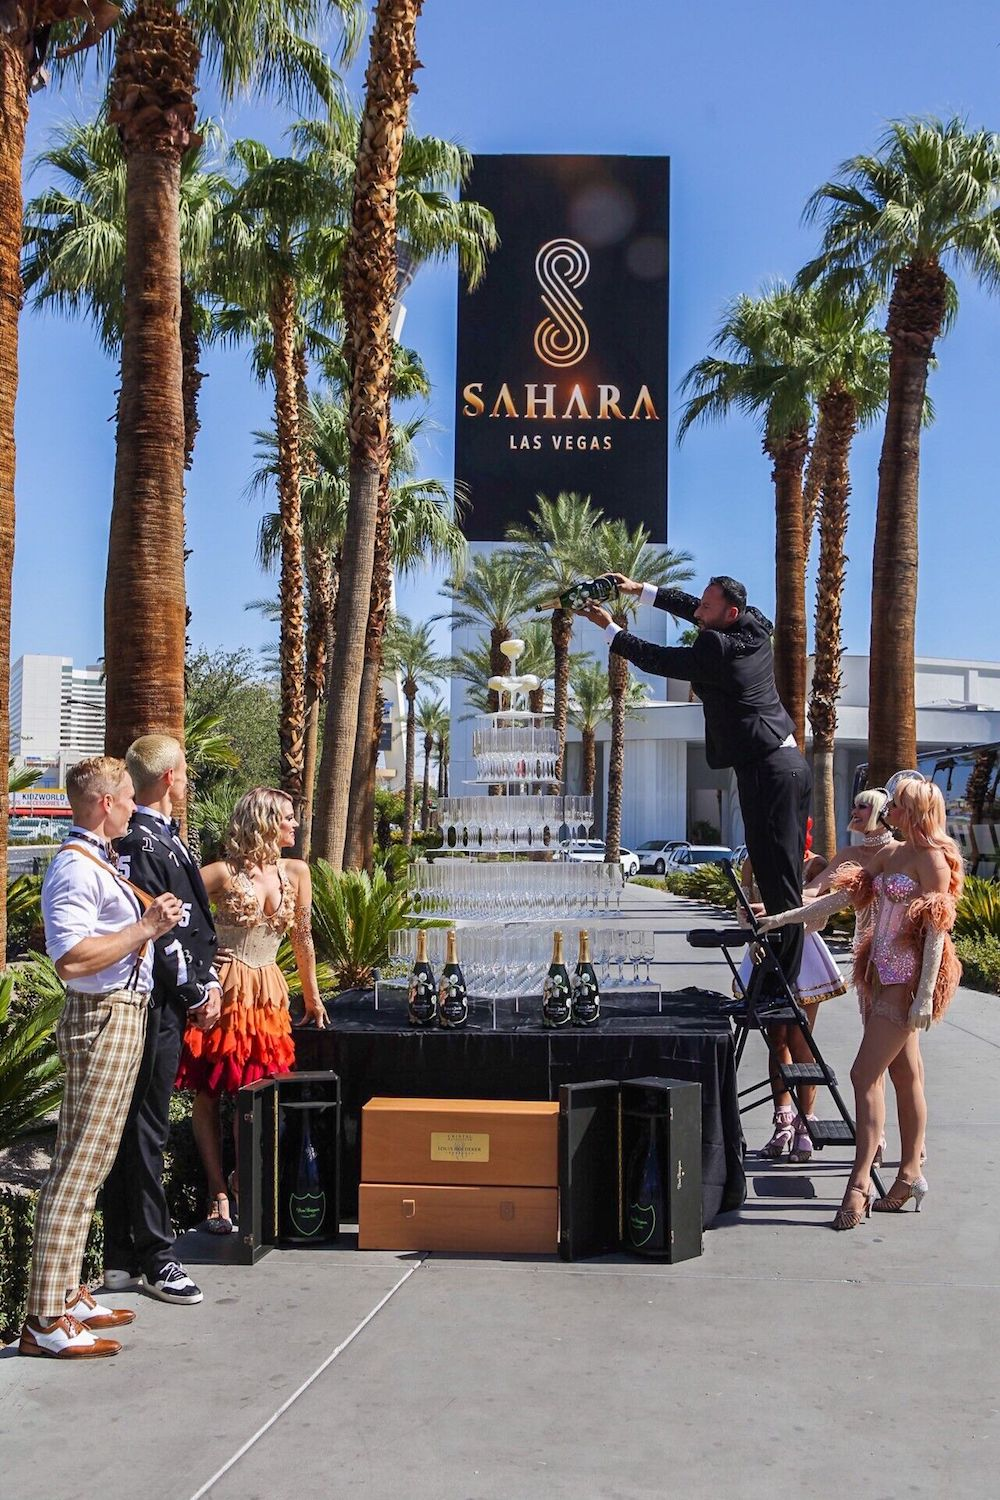 For the love of Vegas! Sahara Las Vegas announces resort-fee-free room rates